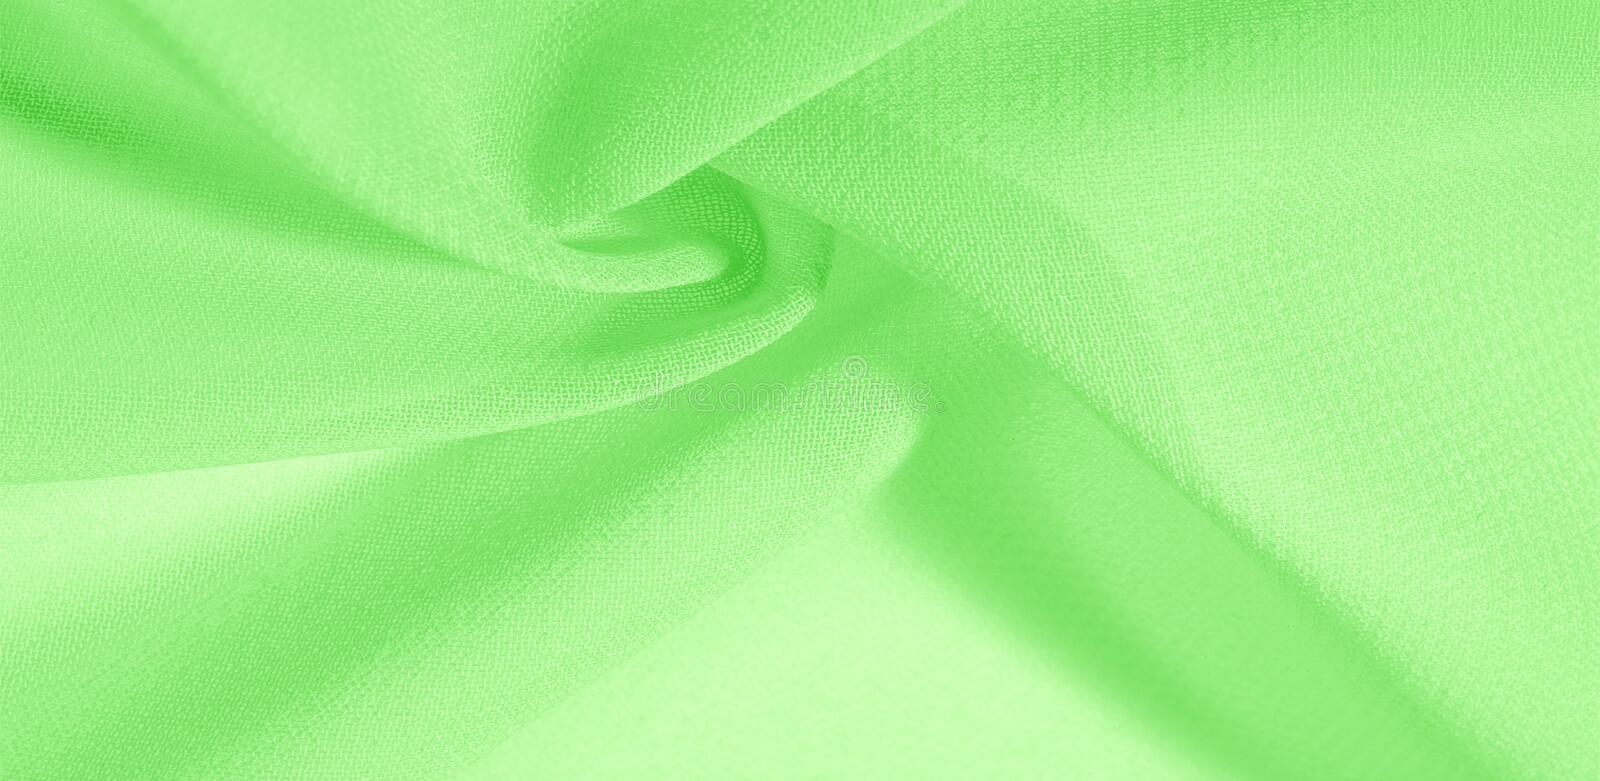 Texture background pattern. Green silk fabric with a subtle matte sheen. It is perfect for your design, accents, wallpapers,. Posters and postcards royalty free stock photos